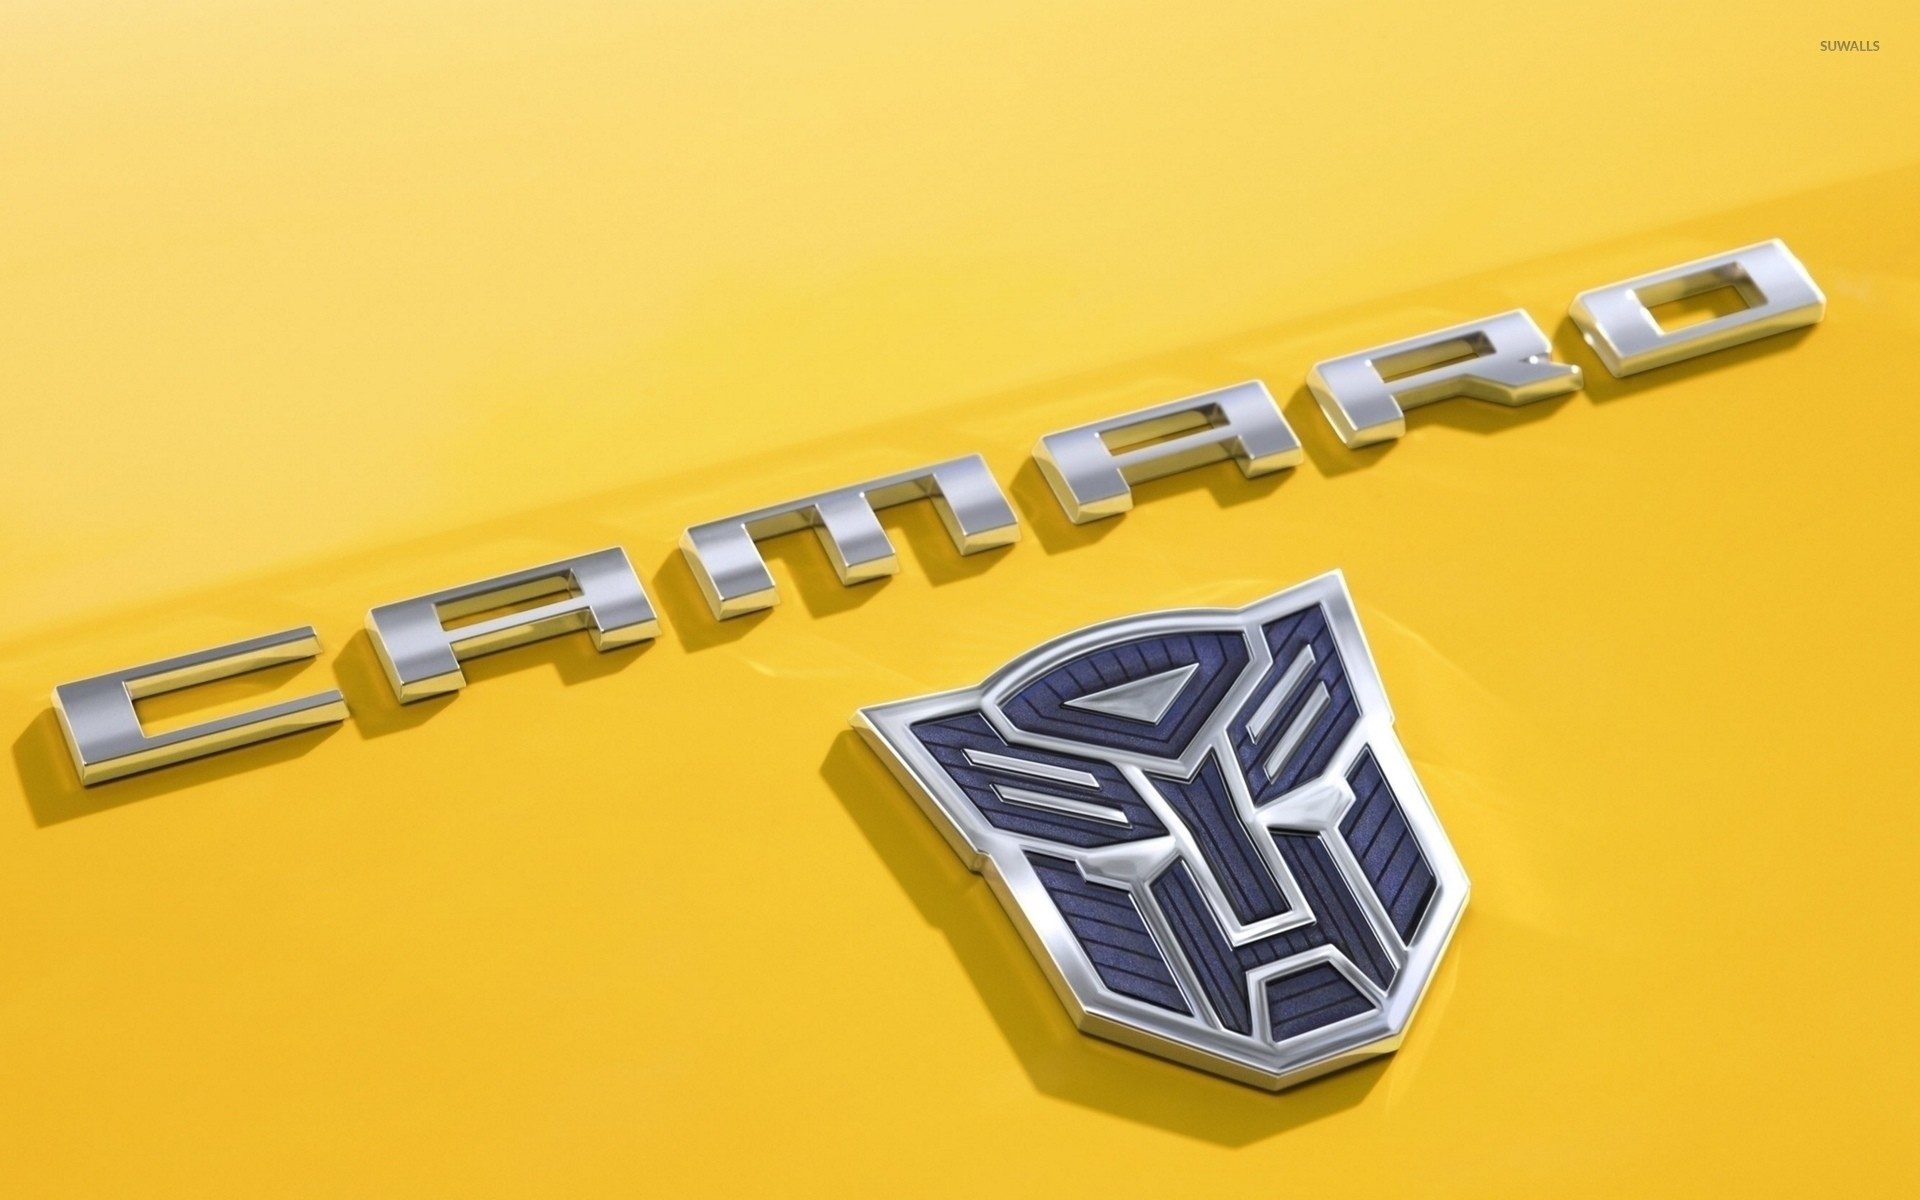 chevrolet camaro logo in transformers wallpaper – car wallpapers. Download  Image 1920 X 1200